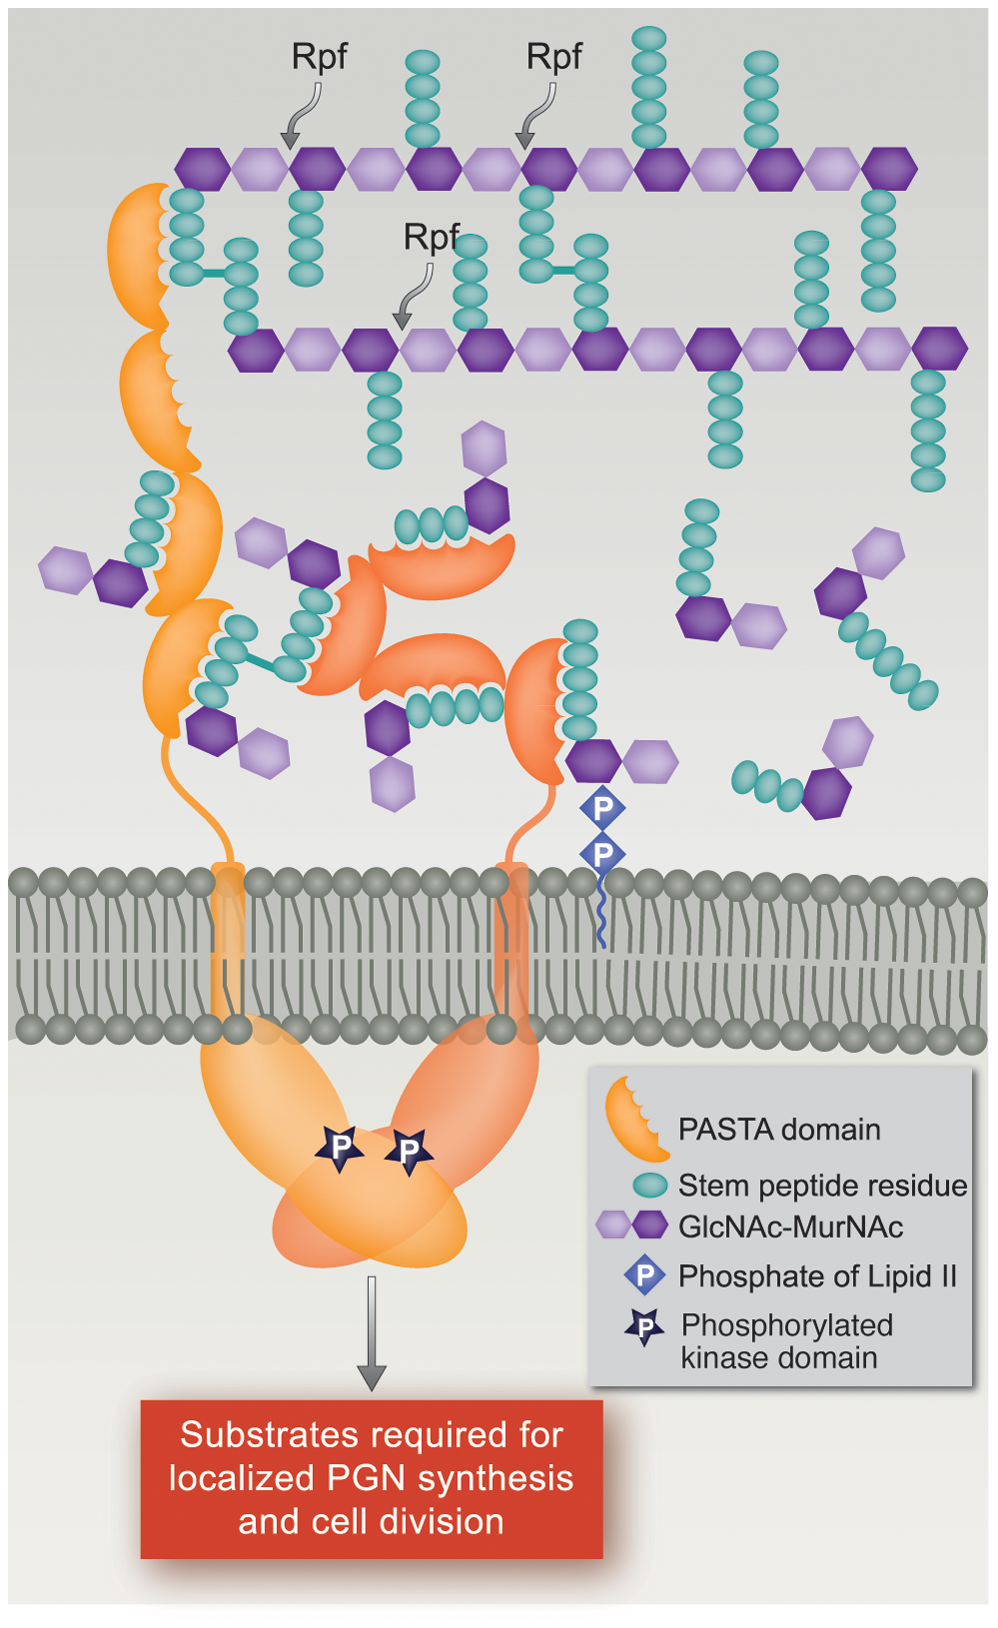 Model of PknB localization and activation by interaction of its extracytoplasmic domain with peptidoglycan fragments.